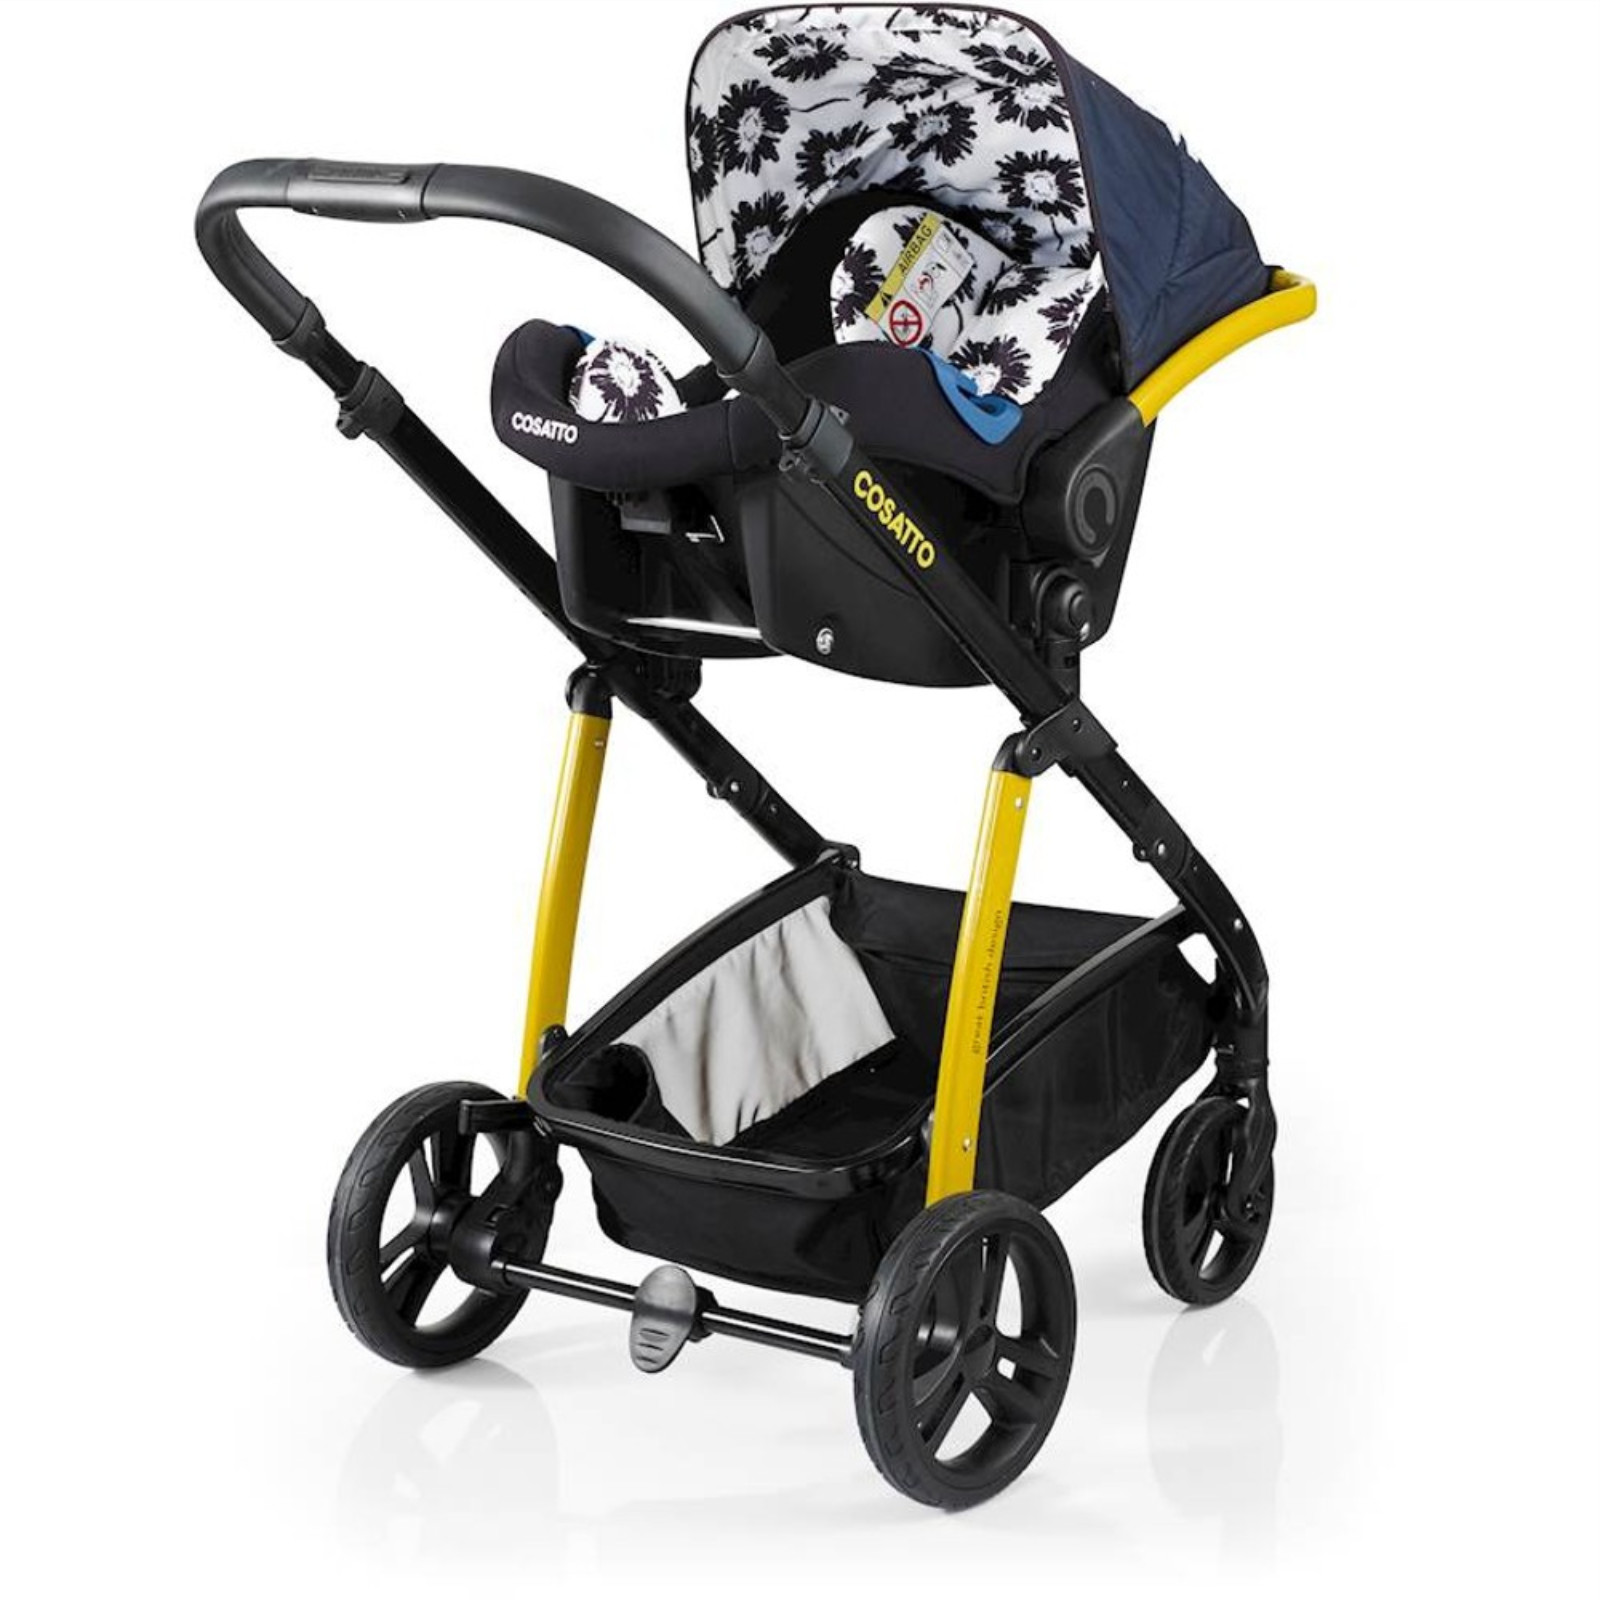 a6025b224733 Cosatto Wow 3 in 1 Combi Travel System With Accessories - Sunburst. Cosatto   Watch Video